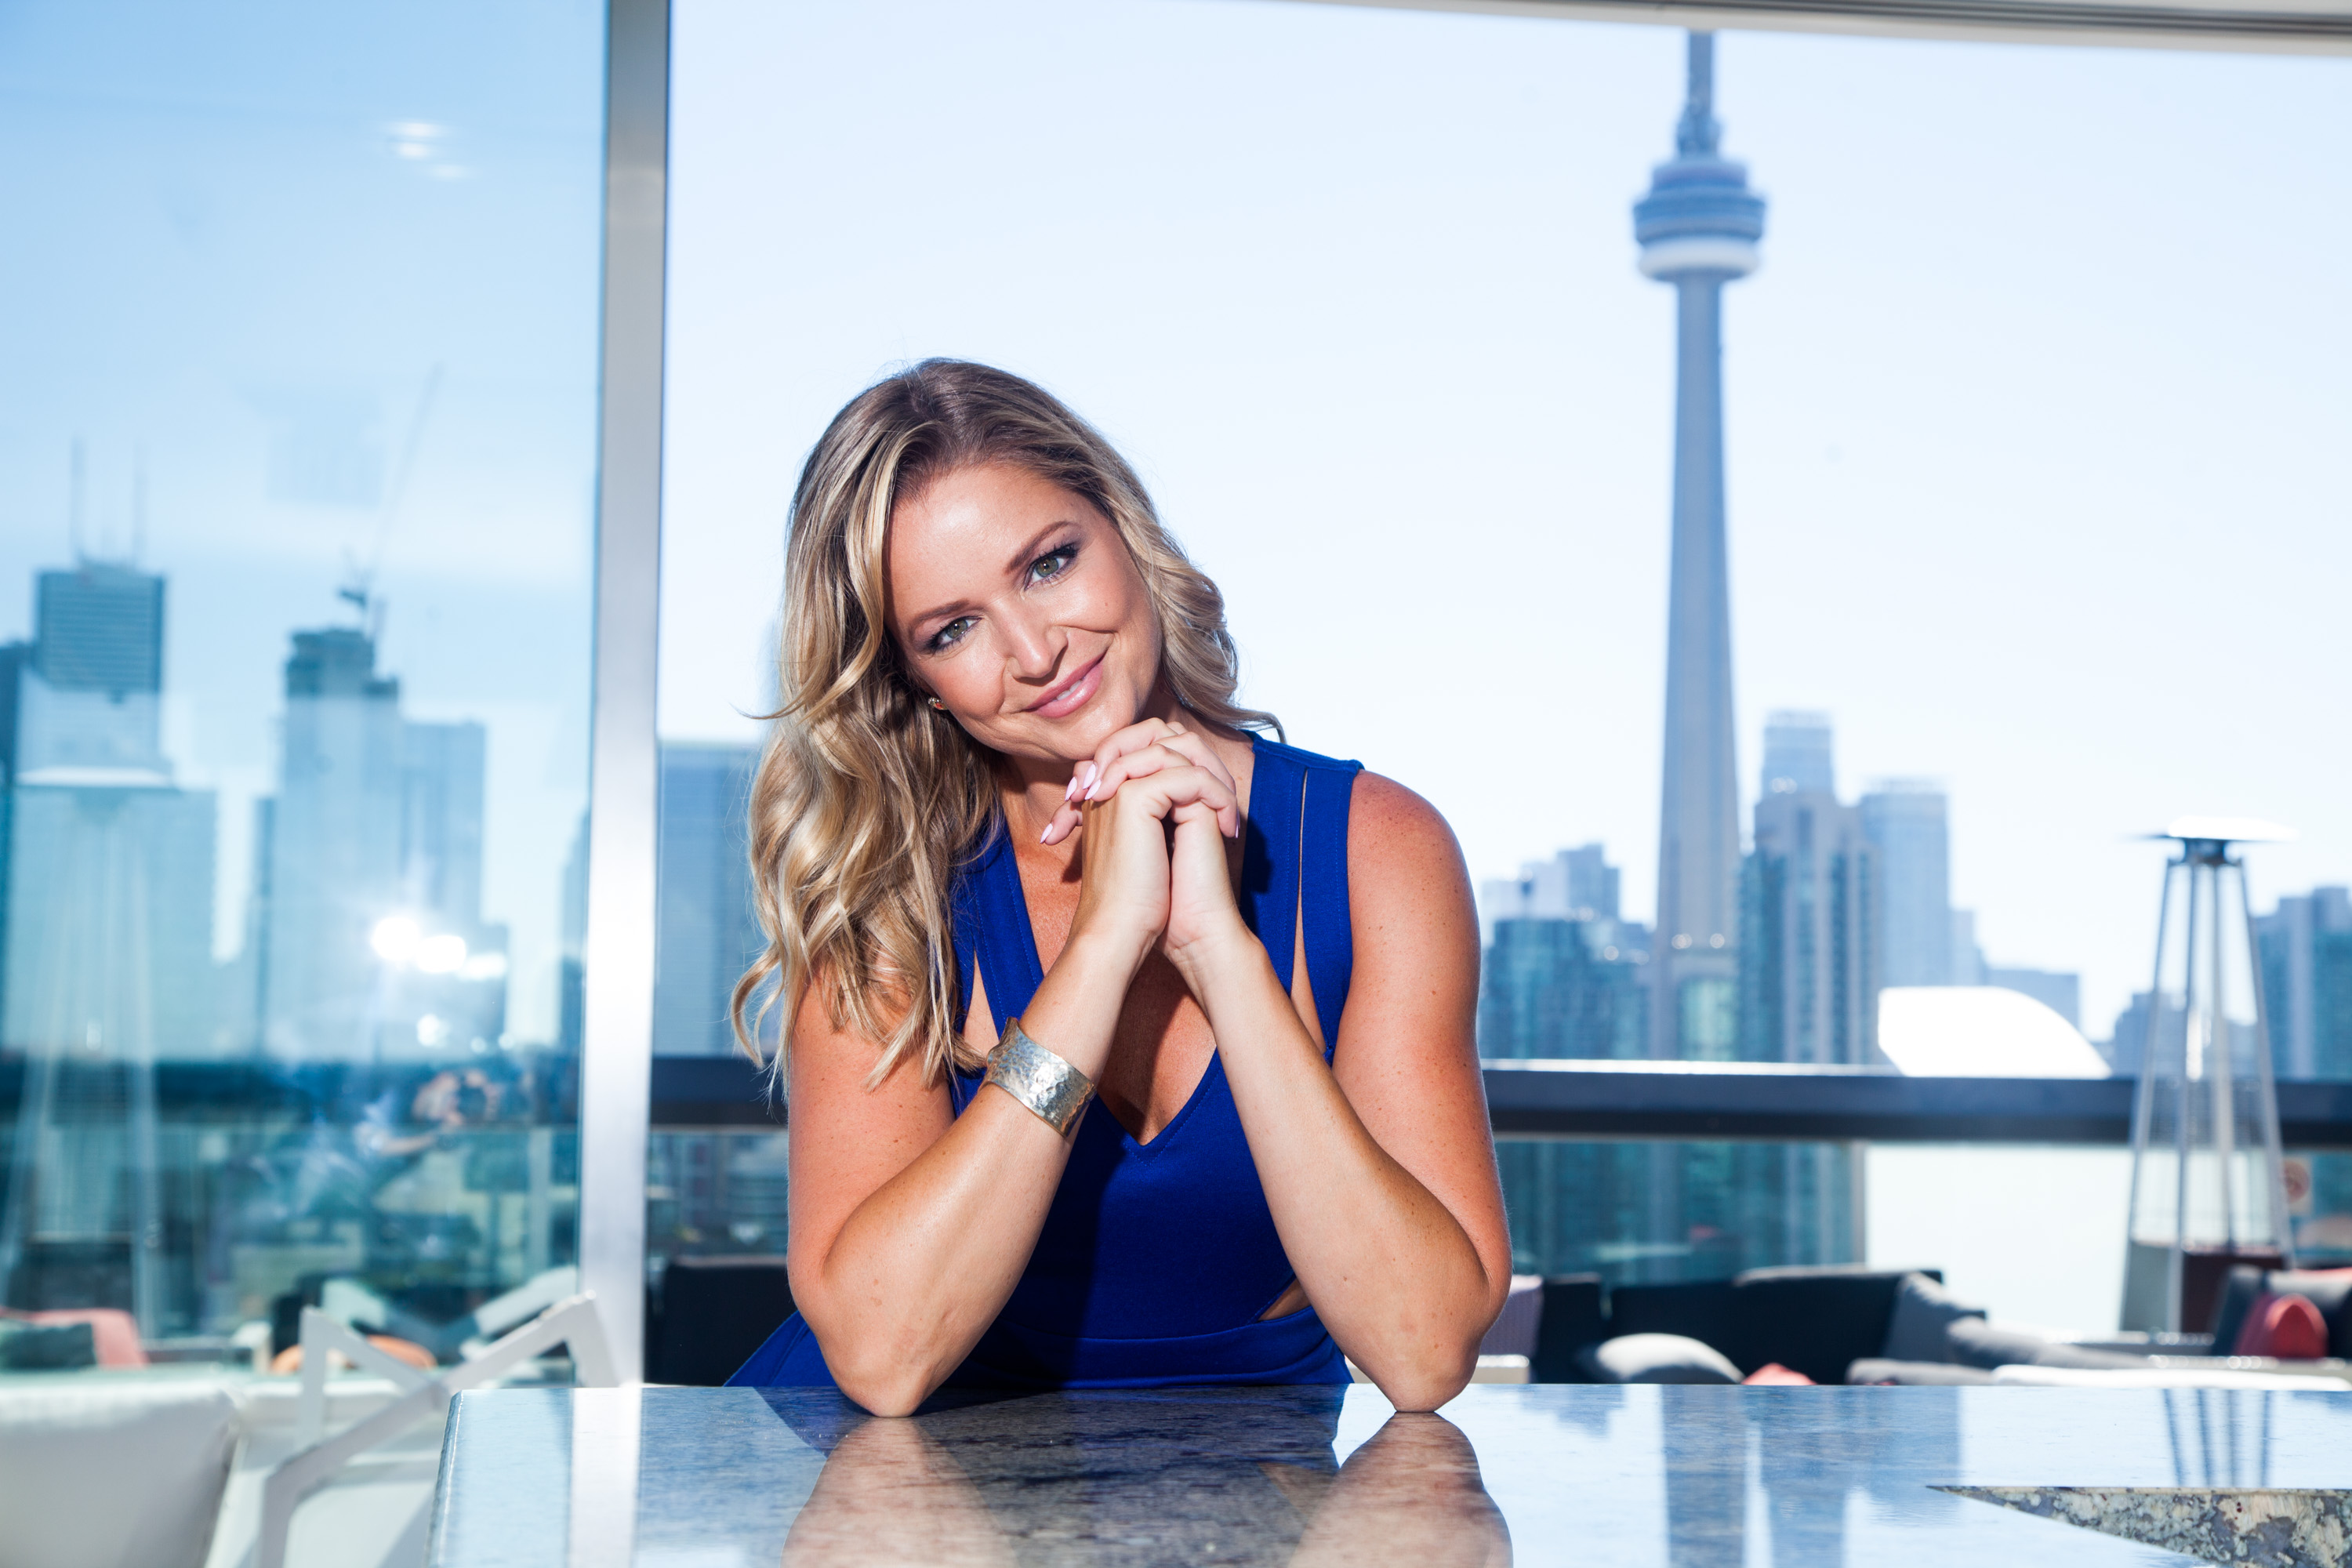 dating experts toronto Upscale matchmaking service janis spindel is the matchmaker to all matchmakers with her serious matchmaking services and online dating platform.